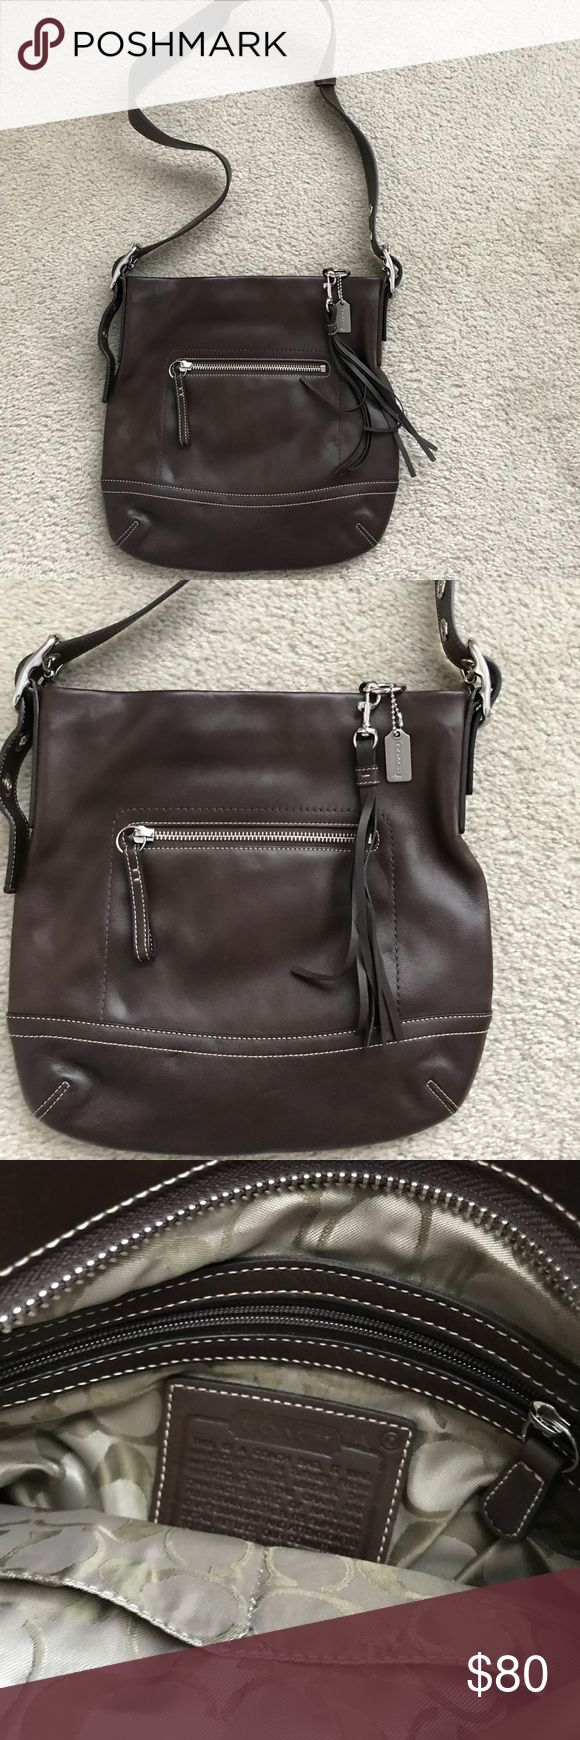 Coach leather bag This bag is in very good condition.  Inside has no stains or flaws.  Straps are in perfect condition as noted in pictures. The tassel is detachable if you prefer the bag without it. Great bag for the fall. COACH Bags